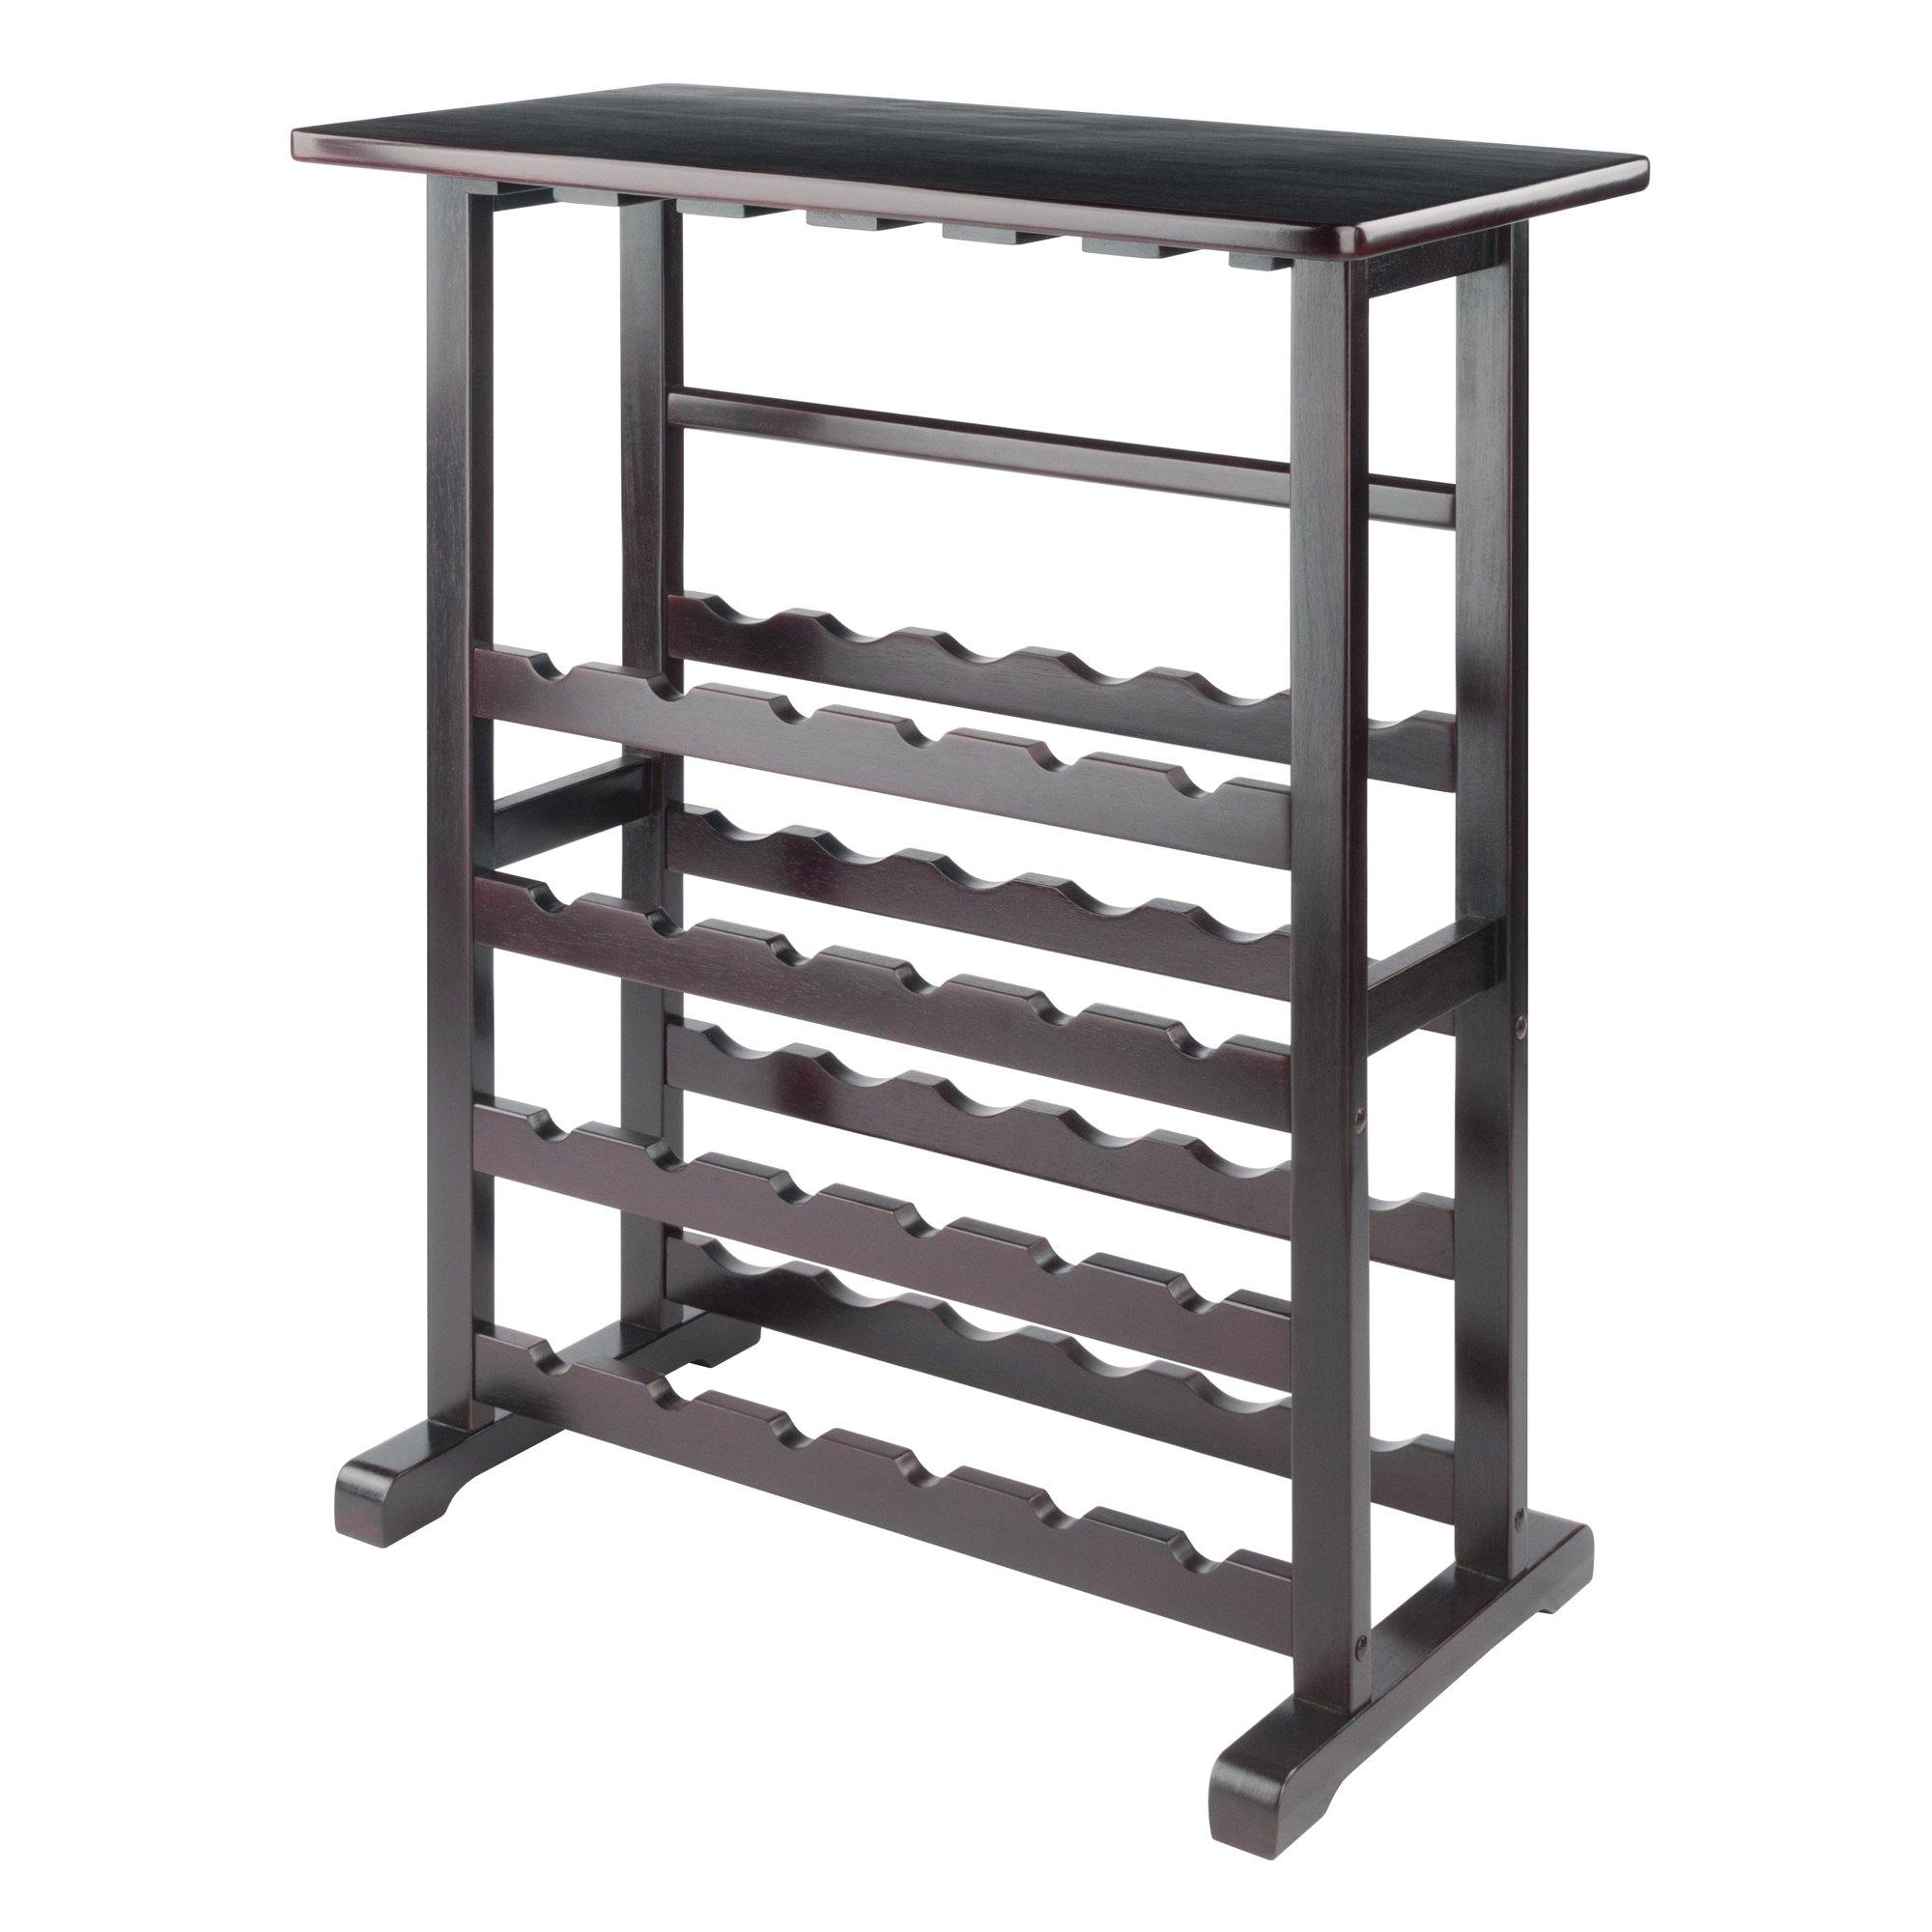 24 Bottle Wine Rack, Made Of Solid Wood, Espresso - My USA Furniture